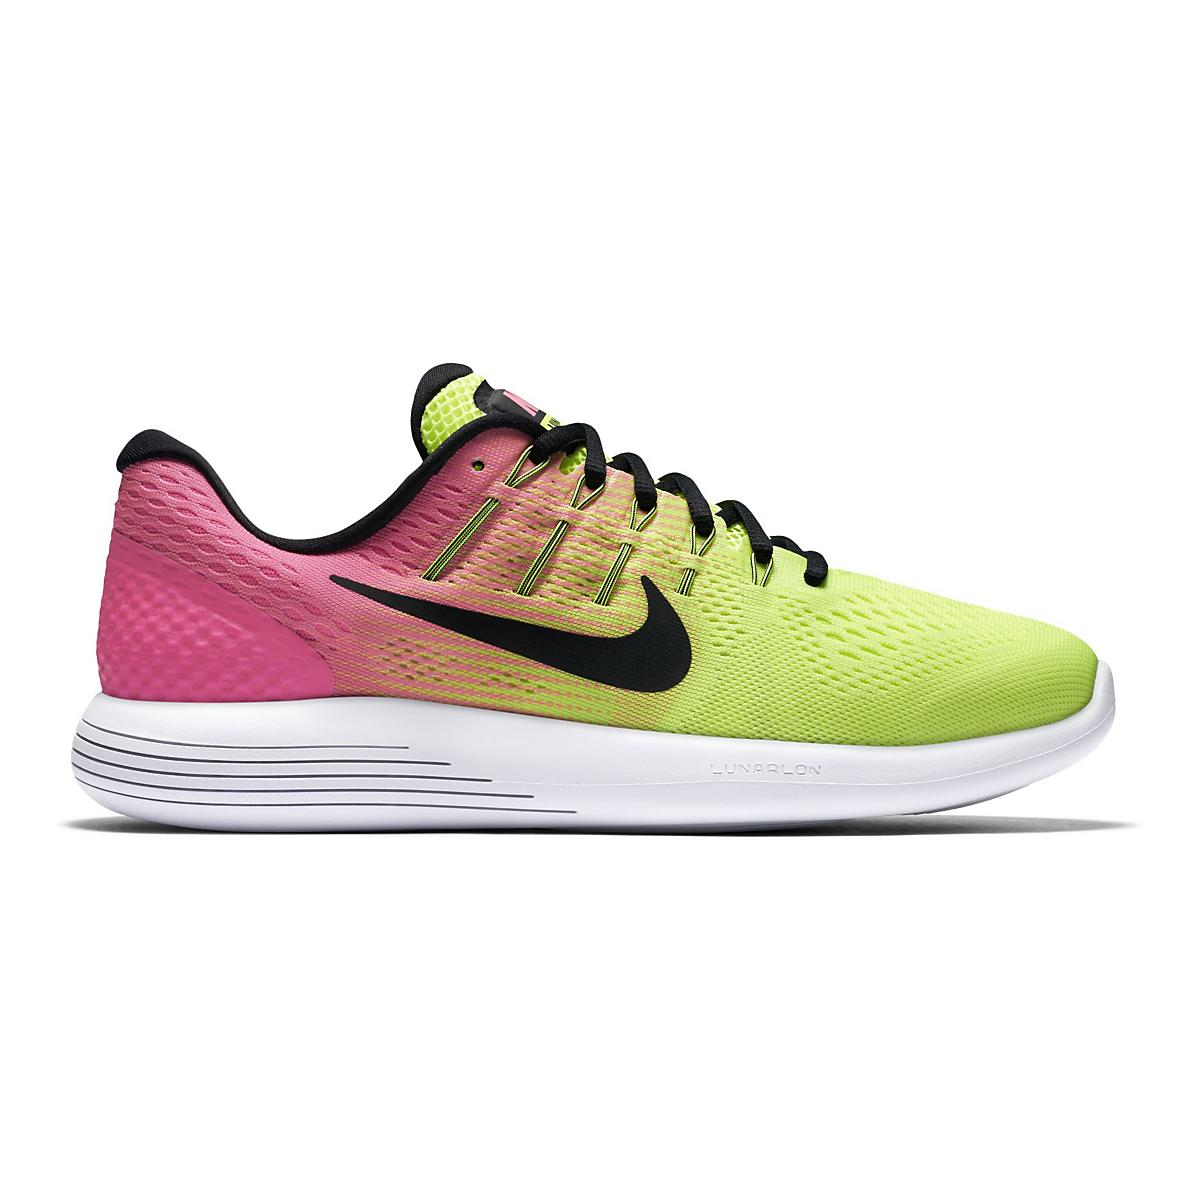 meet 8d4f7 5cb66 Mens Nike LunarGlide 8 Summer Games Running Shoe at Road Runner Sports